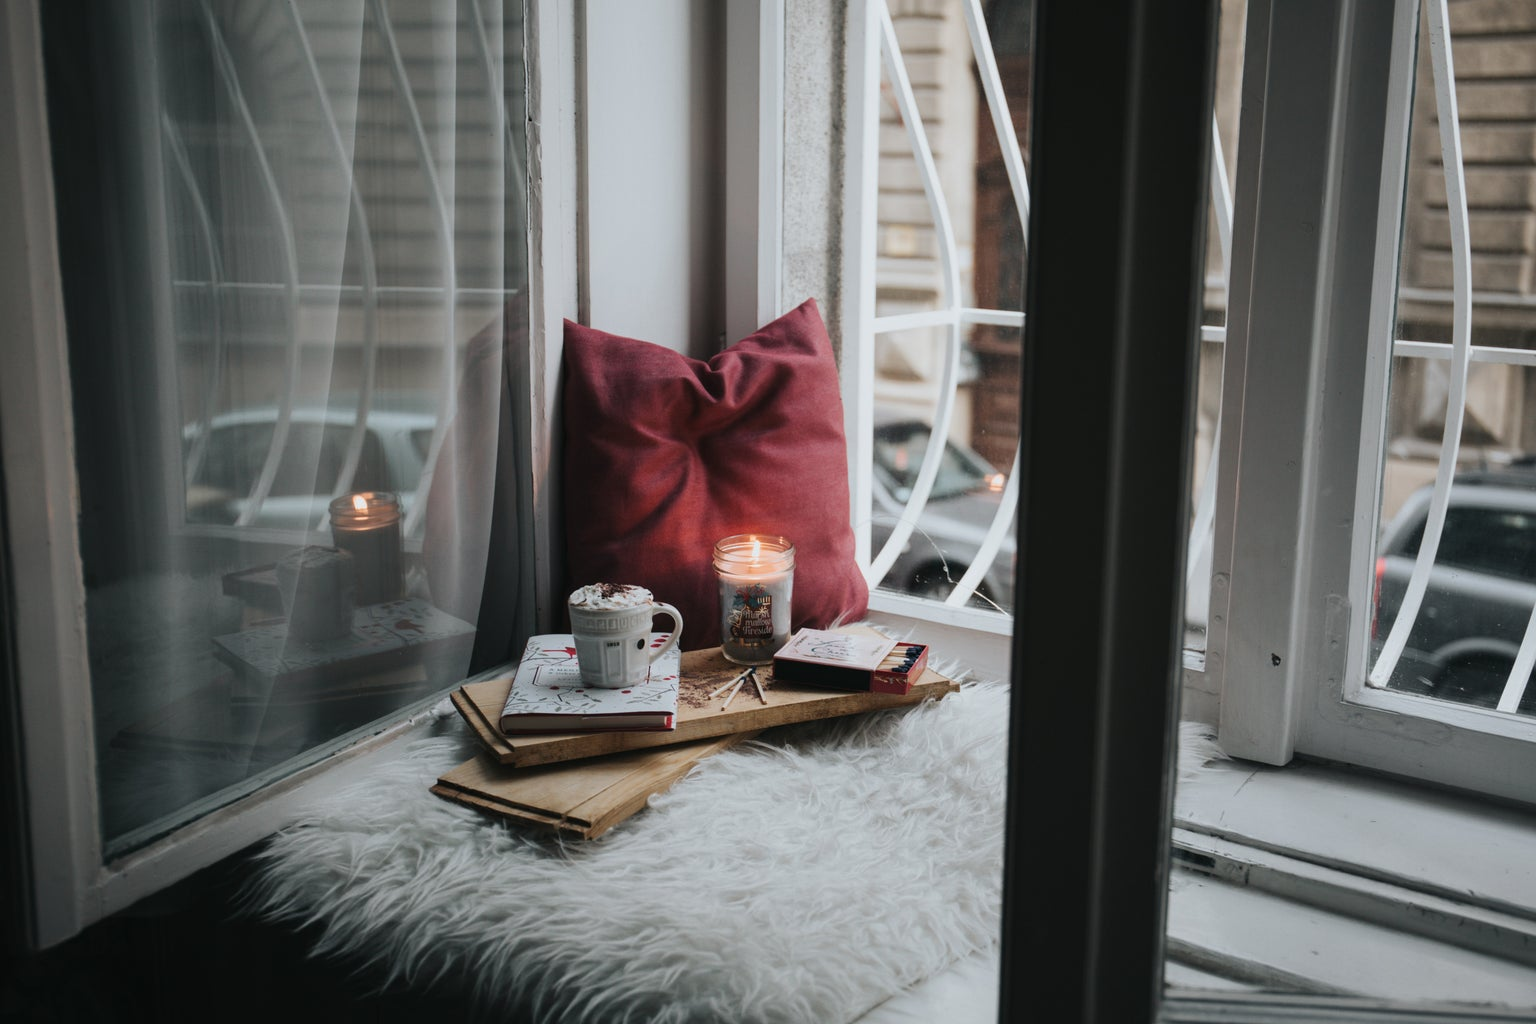 A room with books and a candle